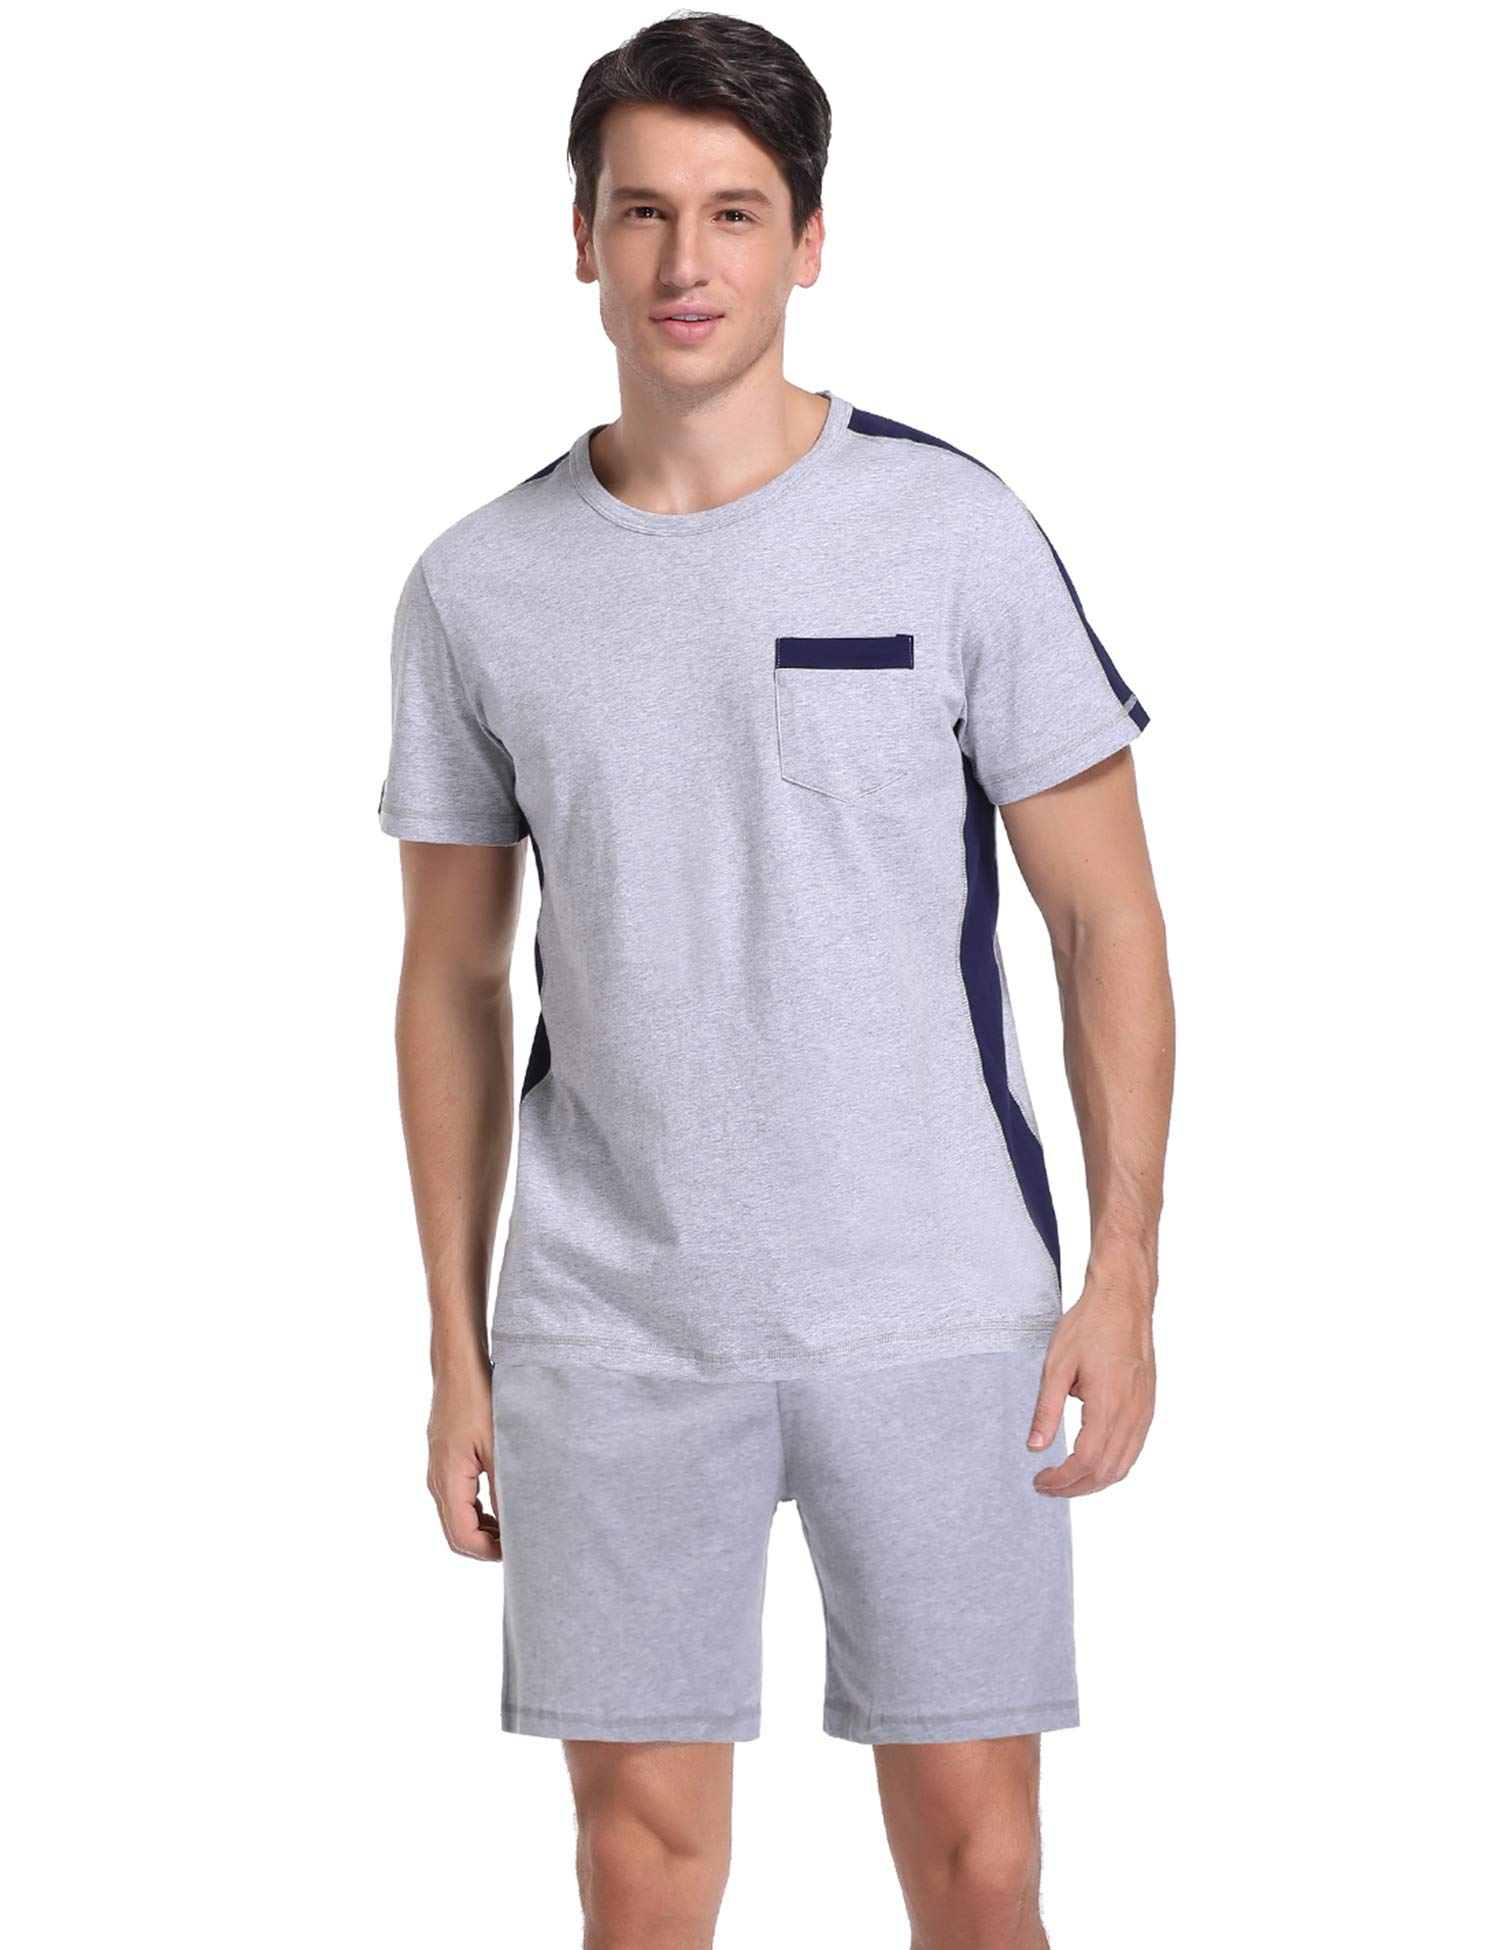 Hawiton Men's Cotton Short Sleeve Contrast Tops and Shorts Pajamas Set Crew Neck Lounge